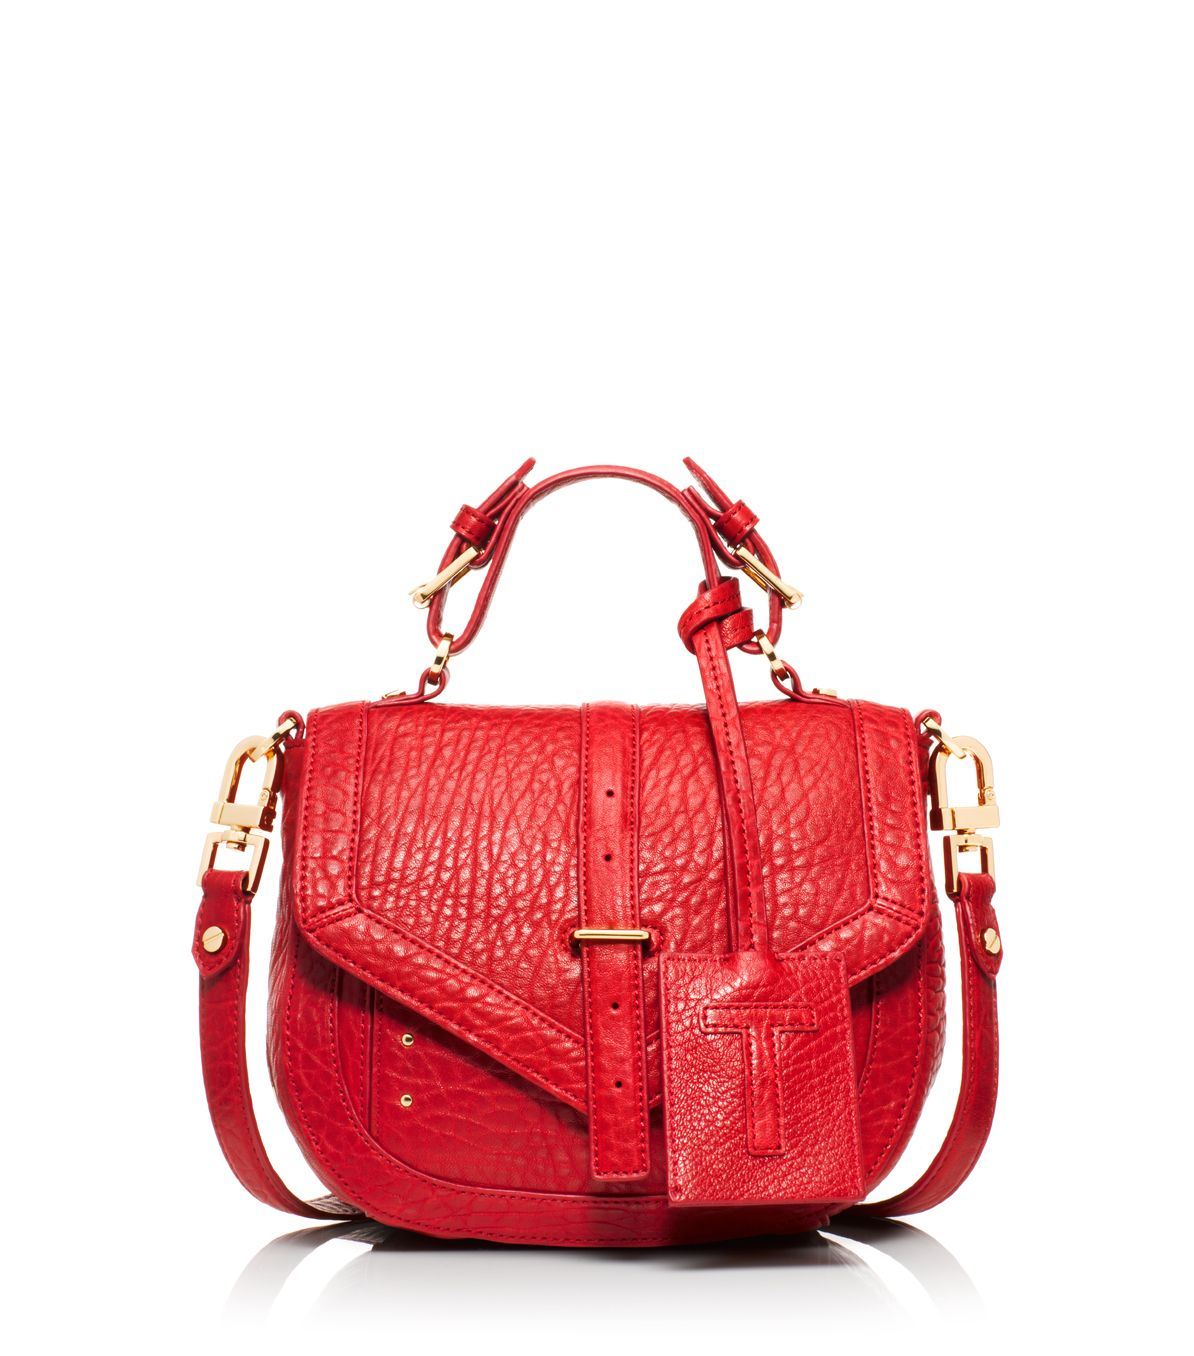 517e6446e379 Tory Burch 797 Crossbody Pouch in Red - Lyst